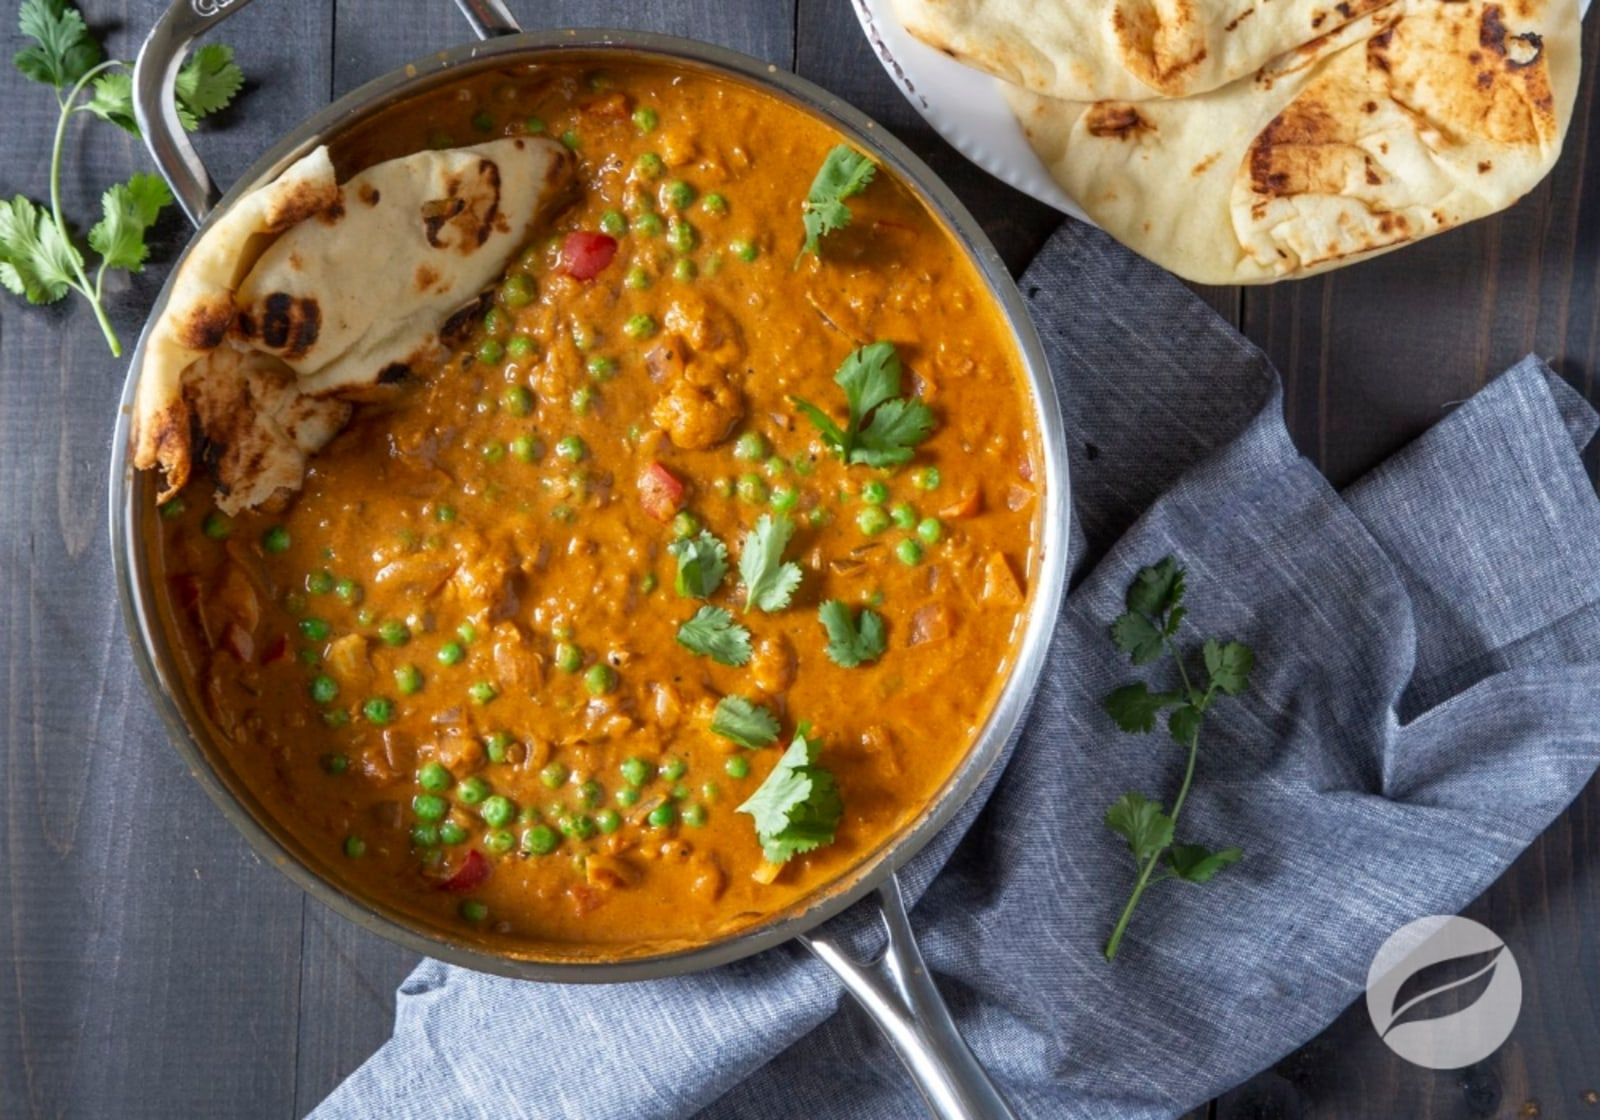 Image of Red Lentil & Vegetable Curry